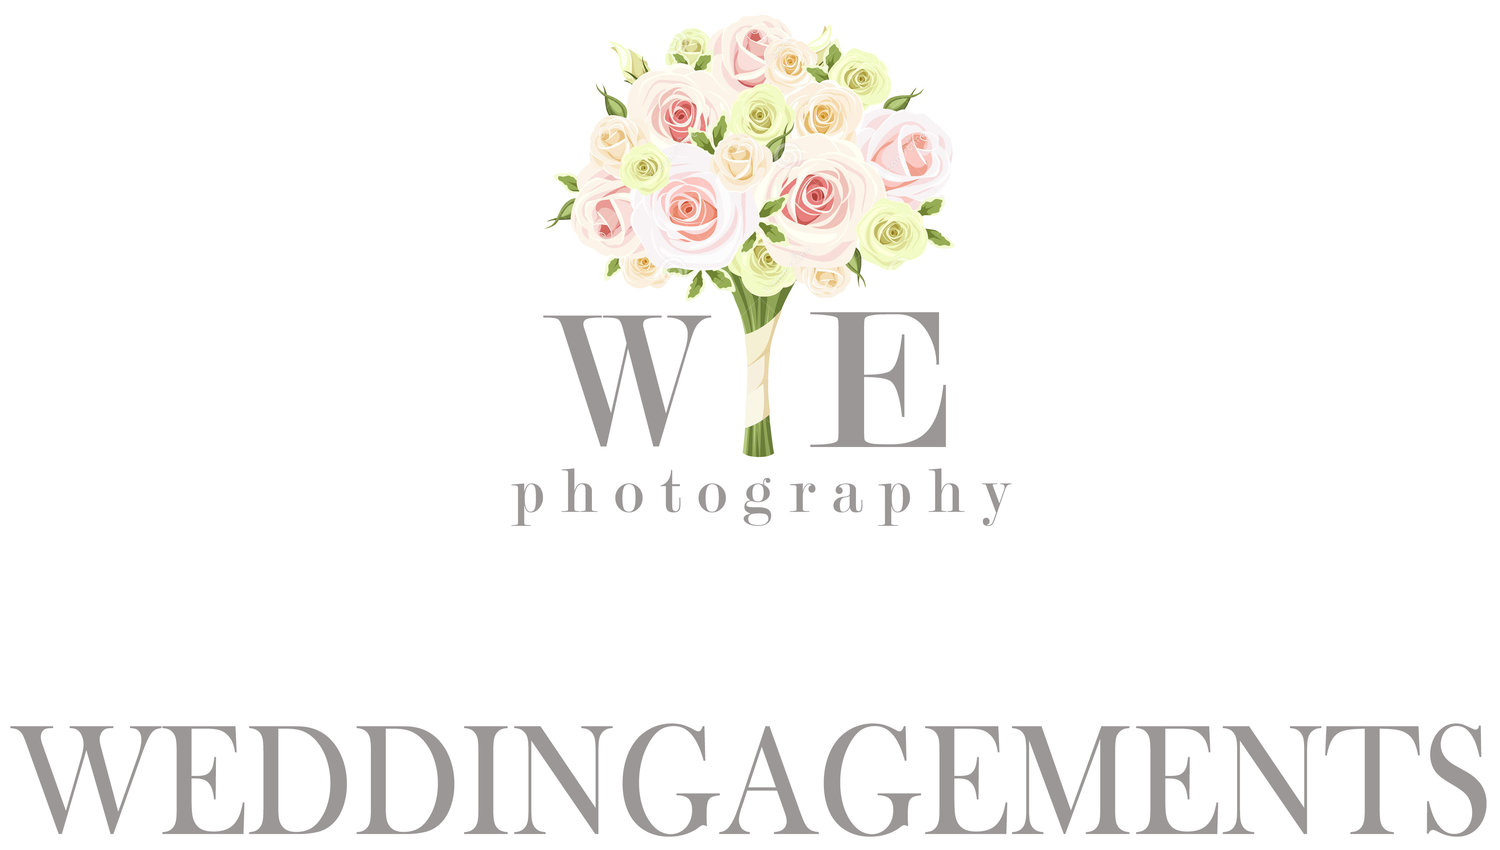 WEDDINGAGEMENTS